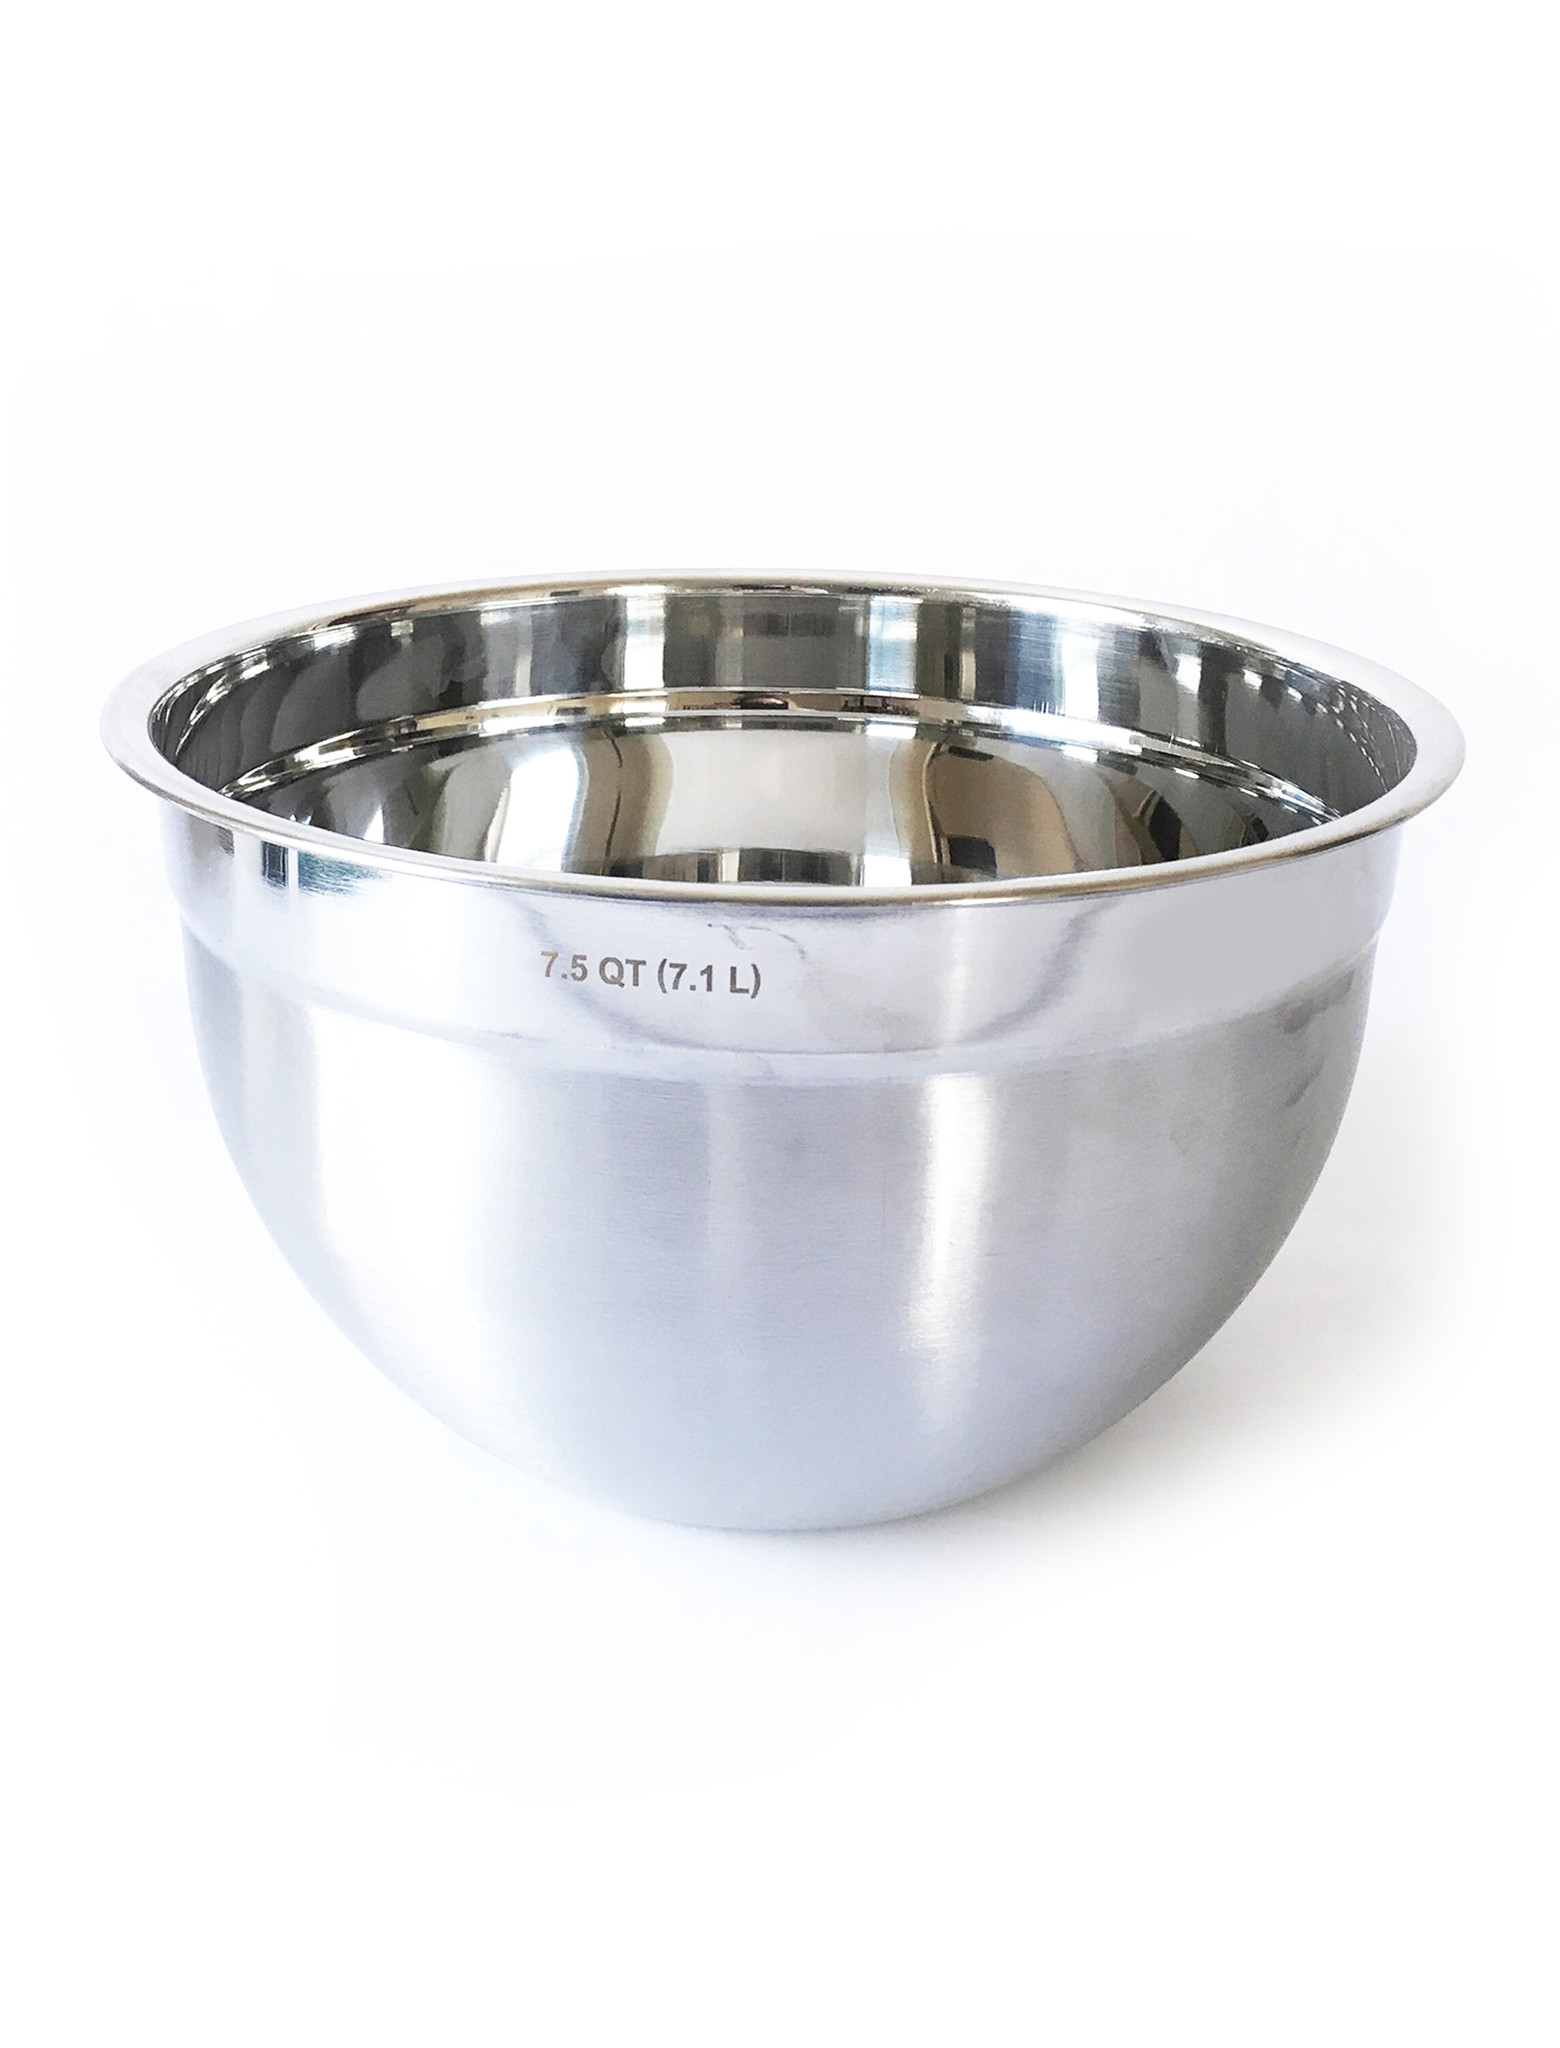 Tovolo Stainless Steel Mixing Bowl, 7.5 qt.-1